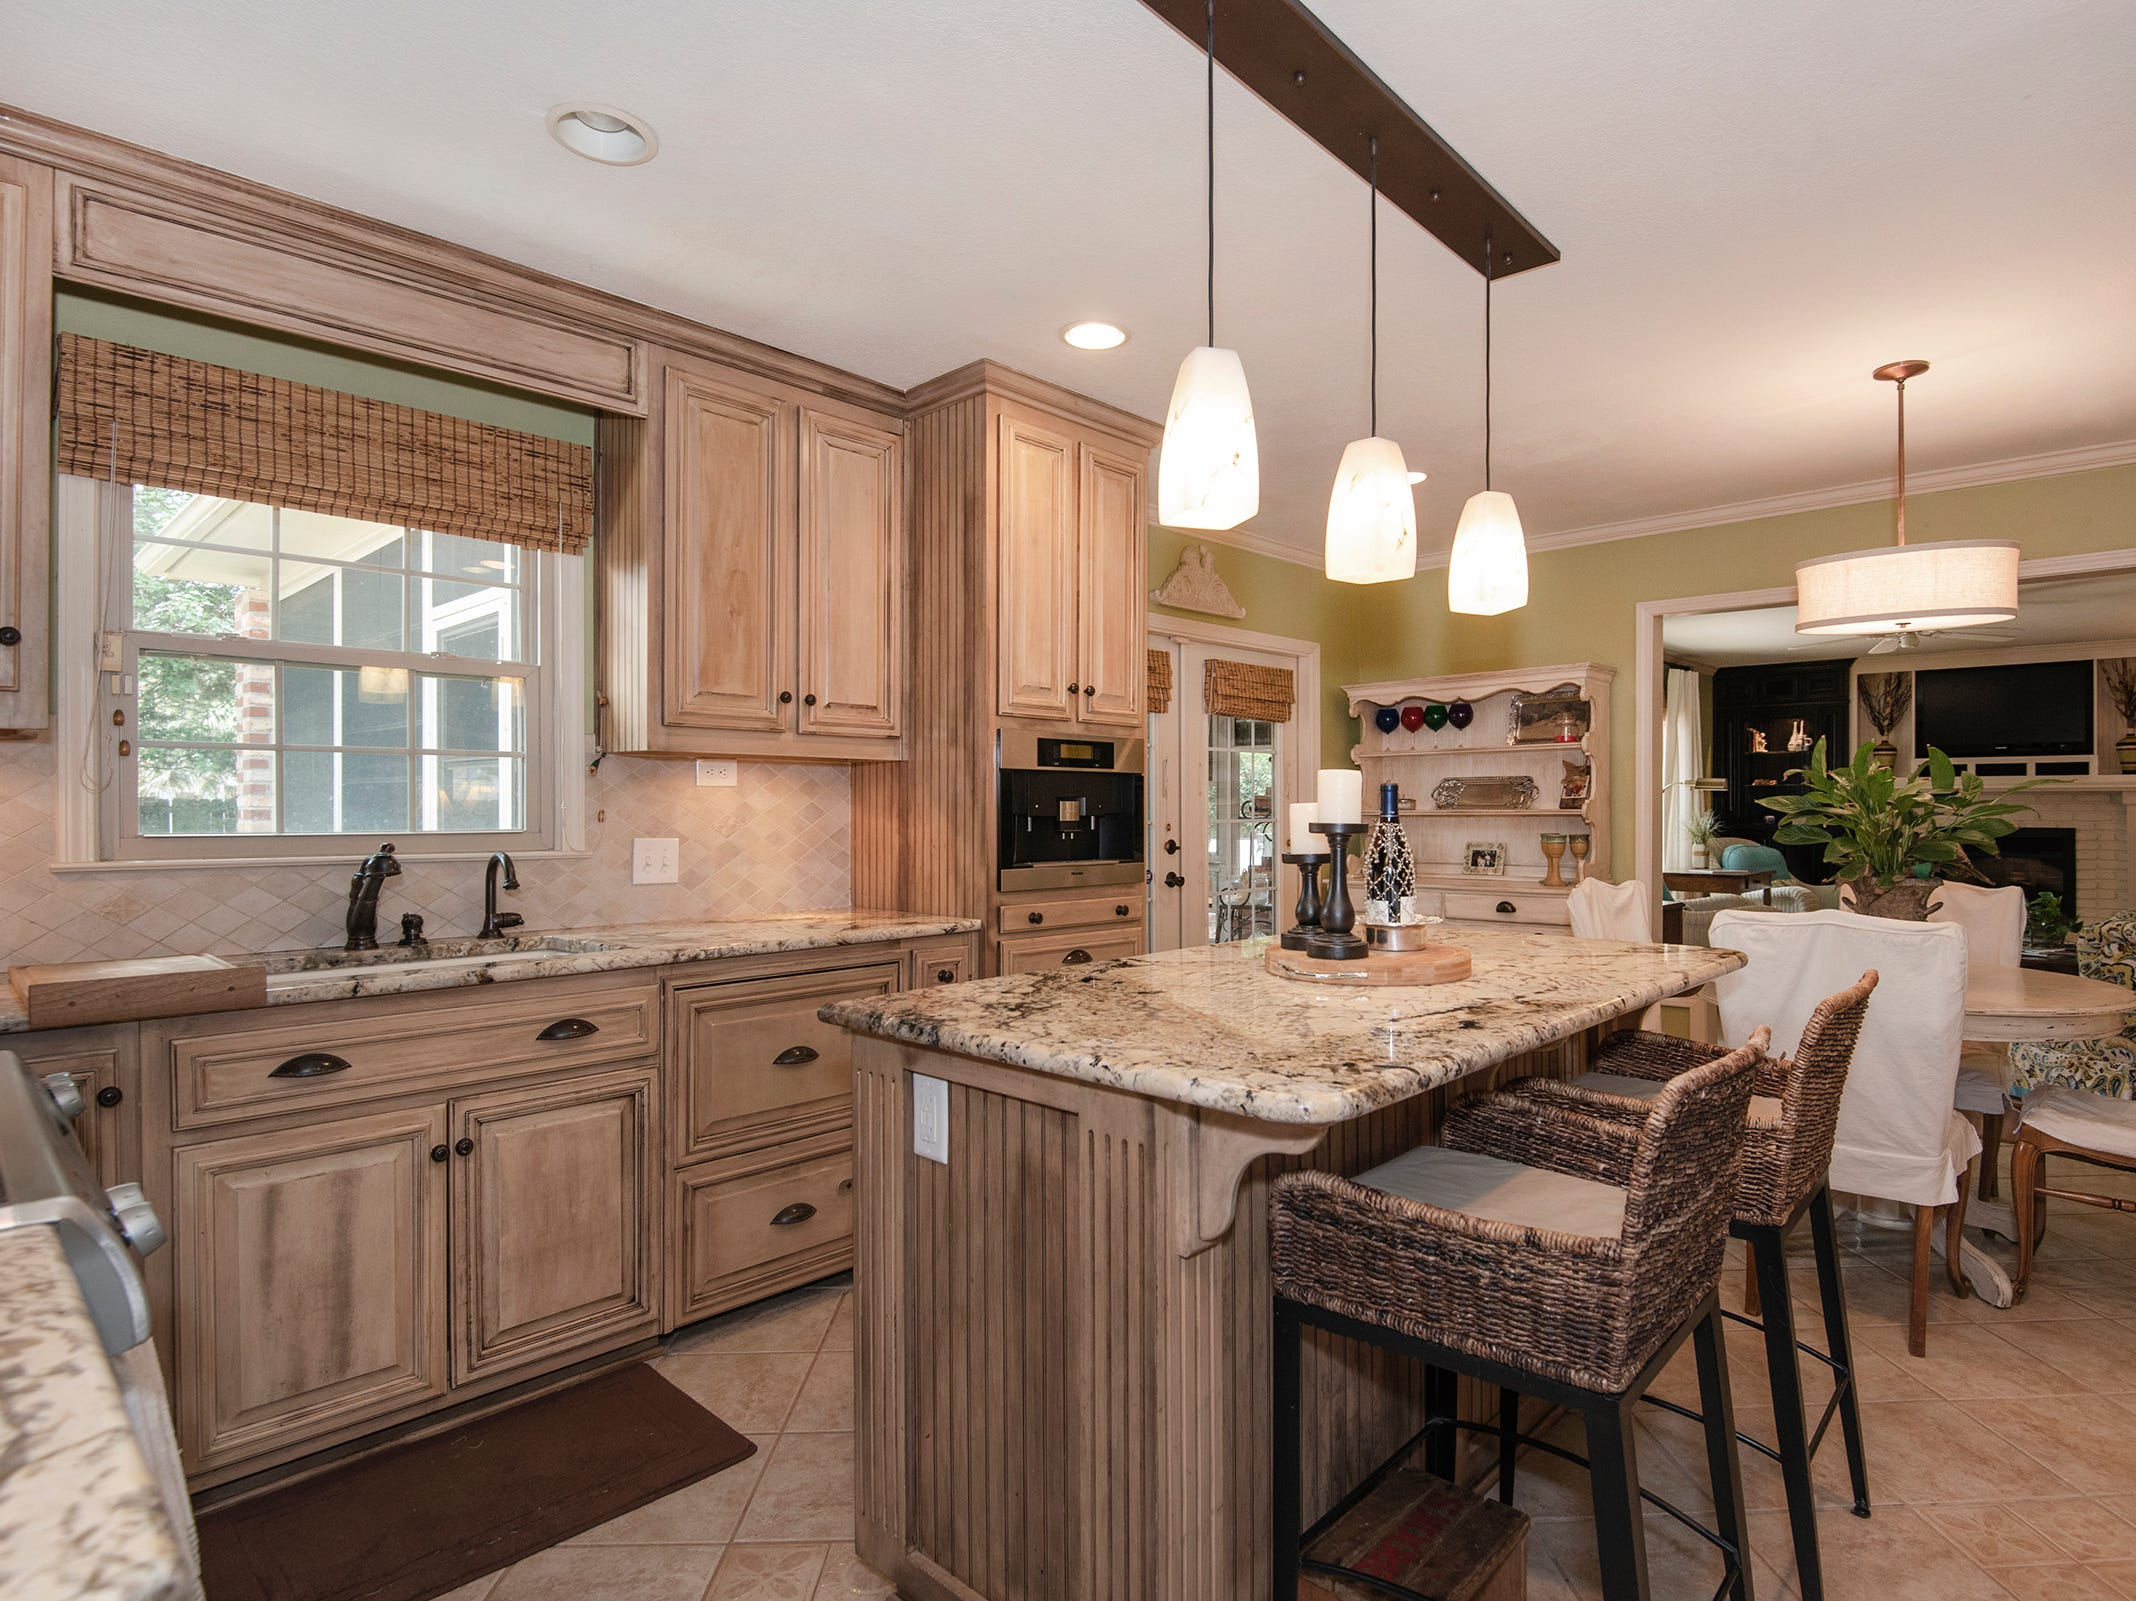 2625 Tambridge Circle, the open kitchen with bar seating.